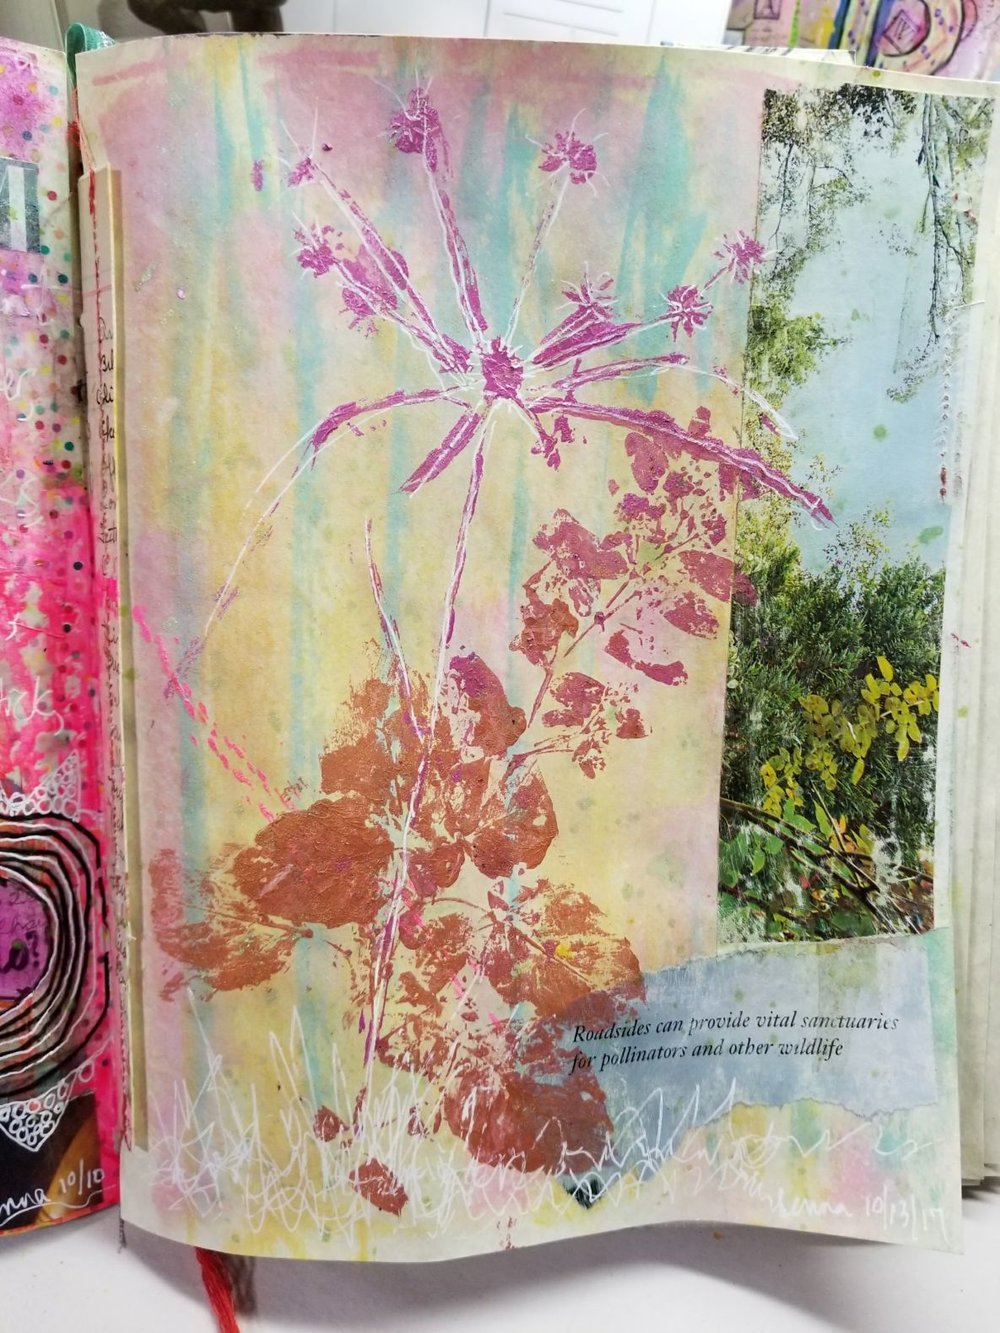 pg 3 -nature printing, collage